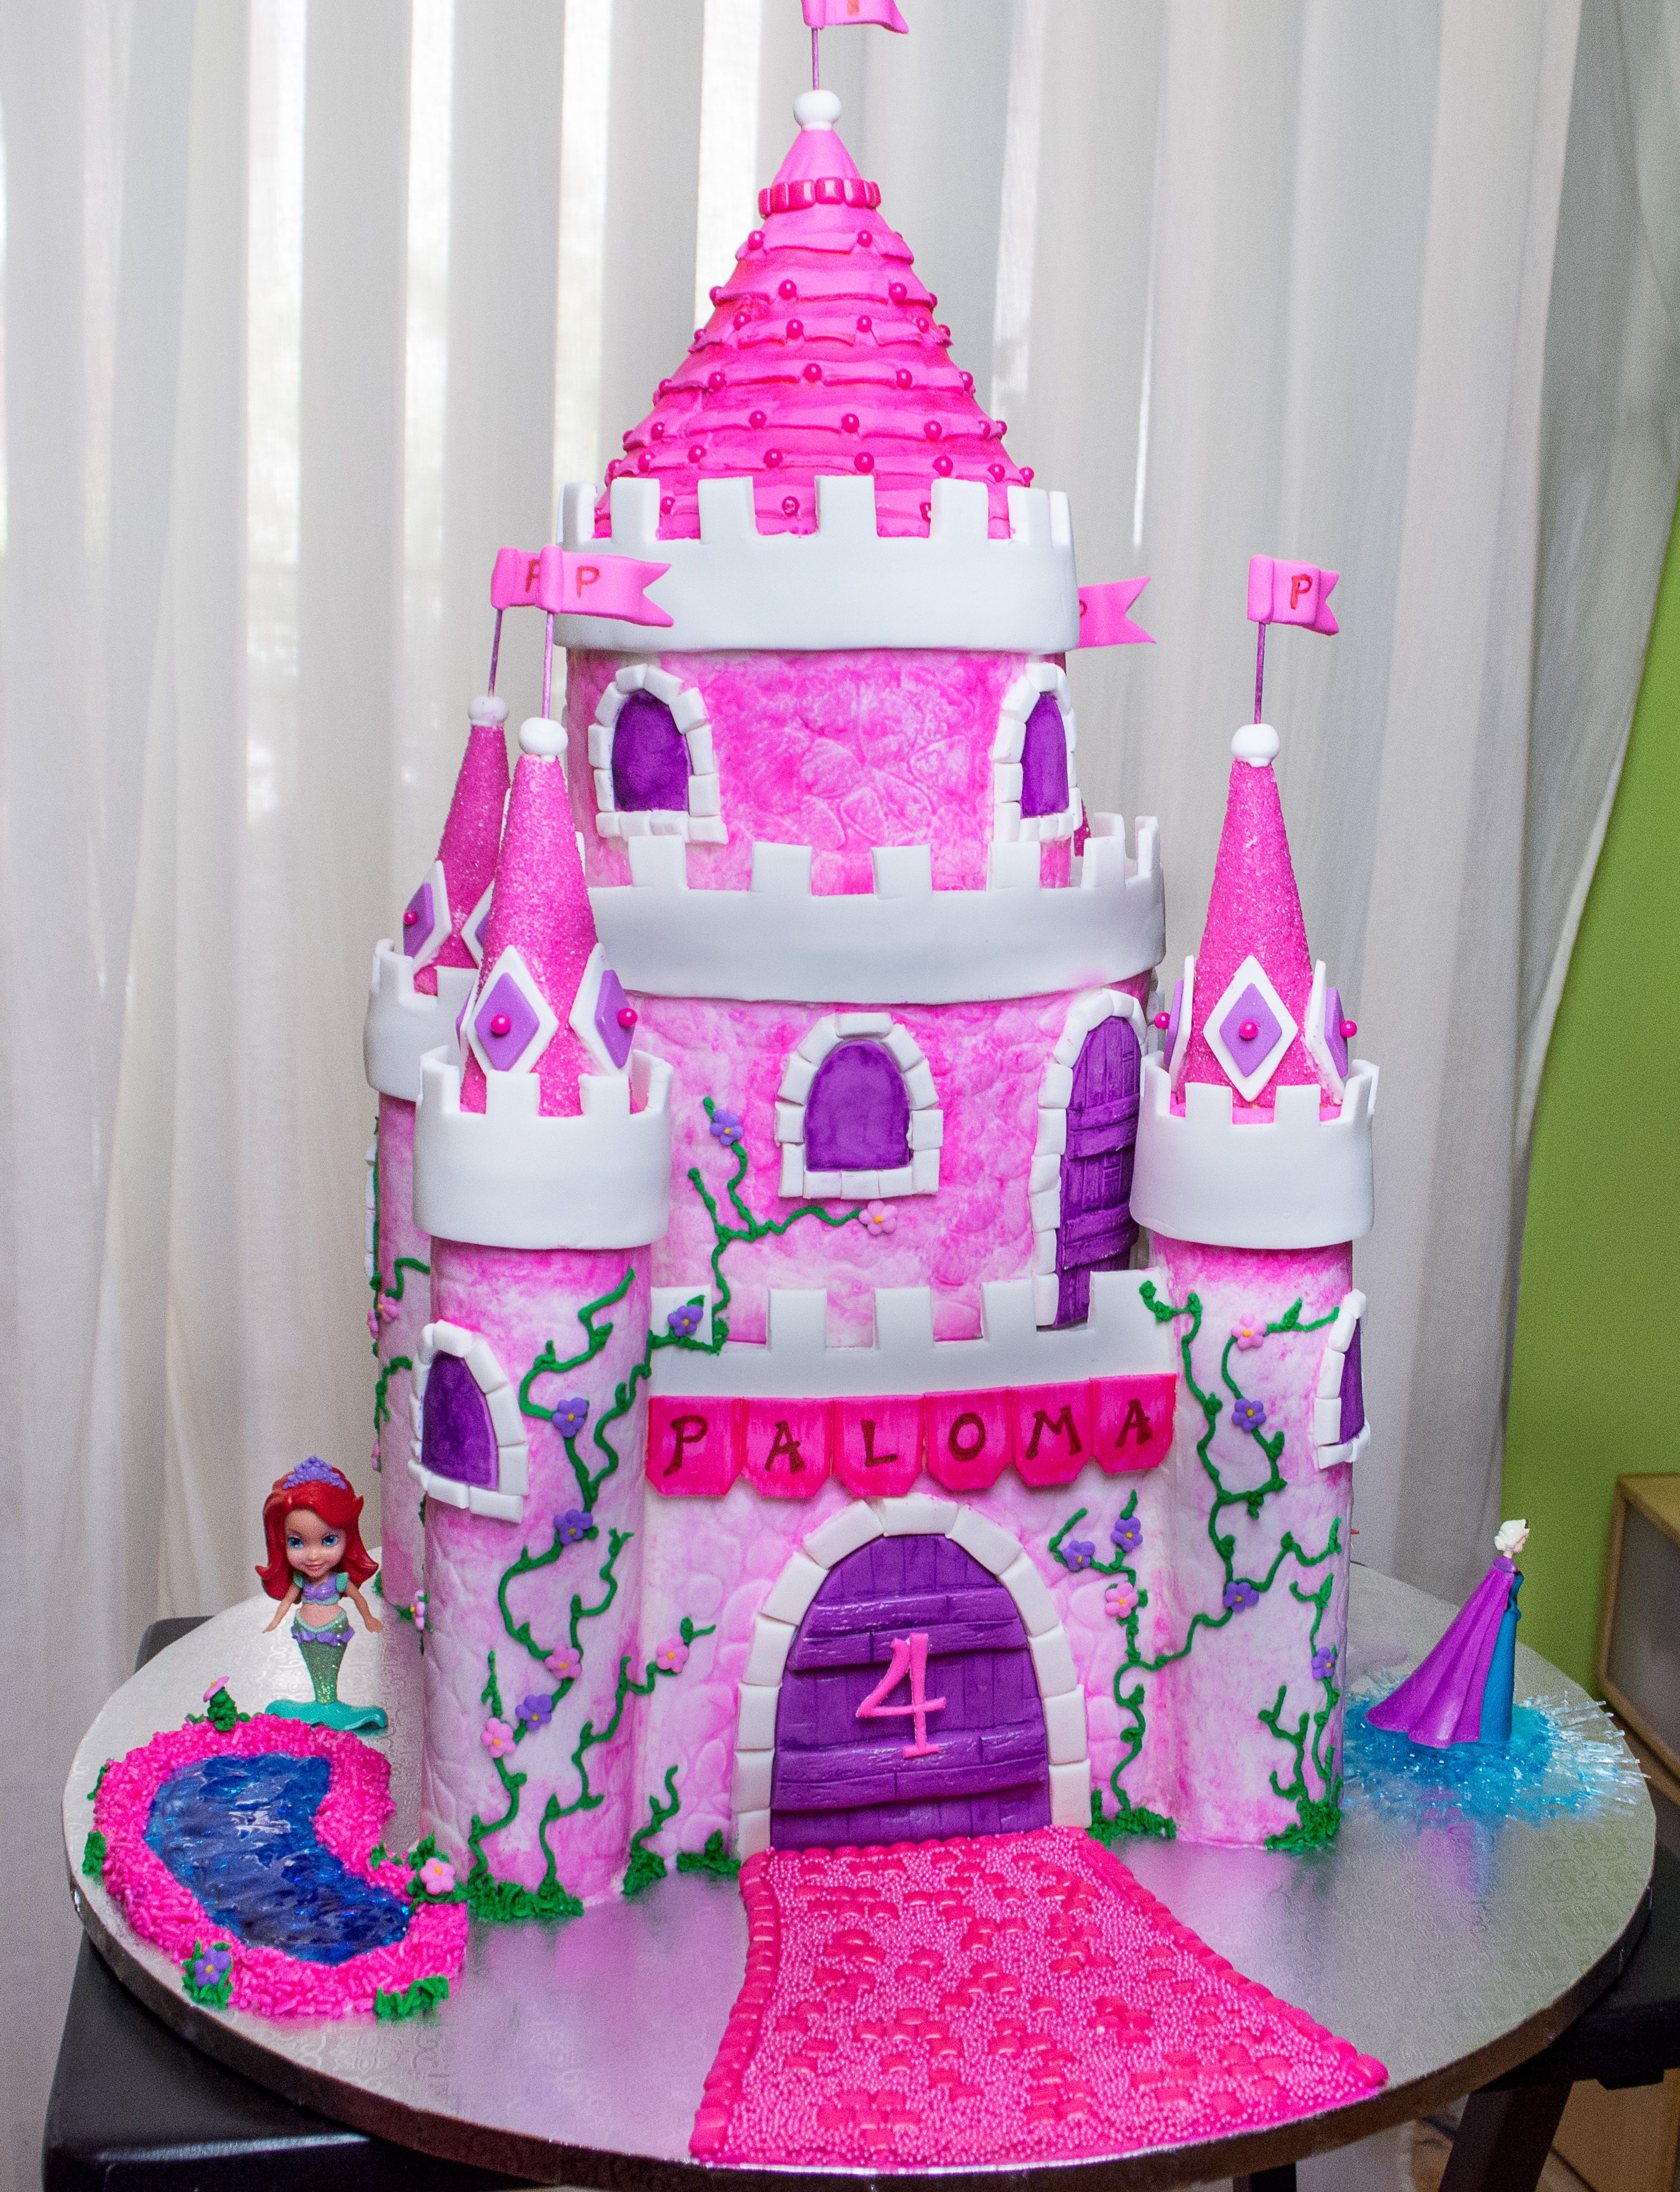 My 4 Year Old Niece Asked For A Pretty Pink Princess Castle Cake